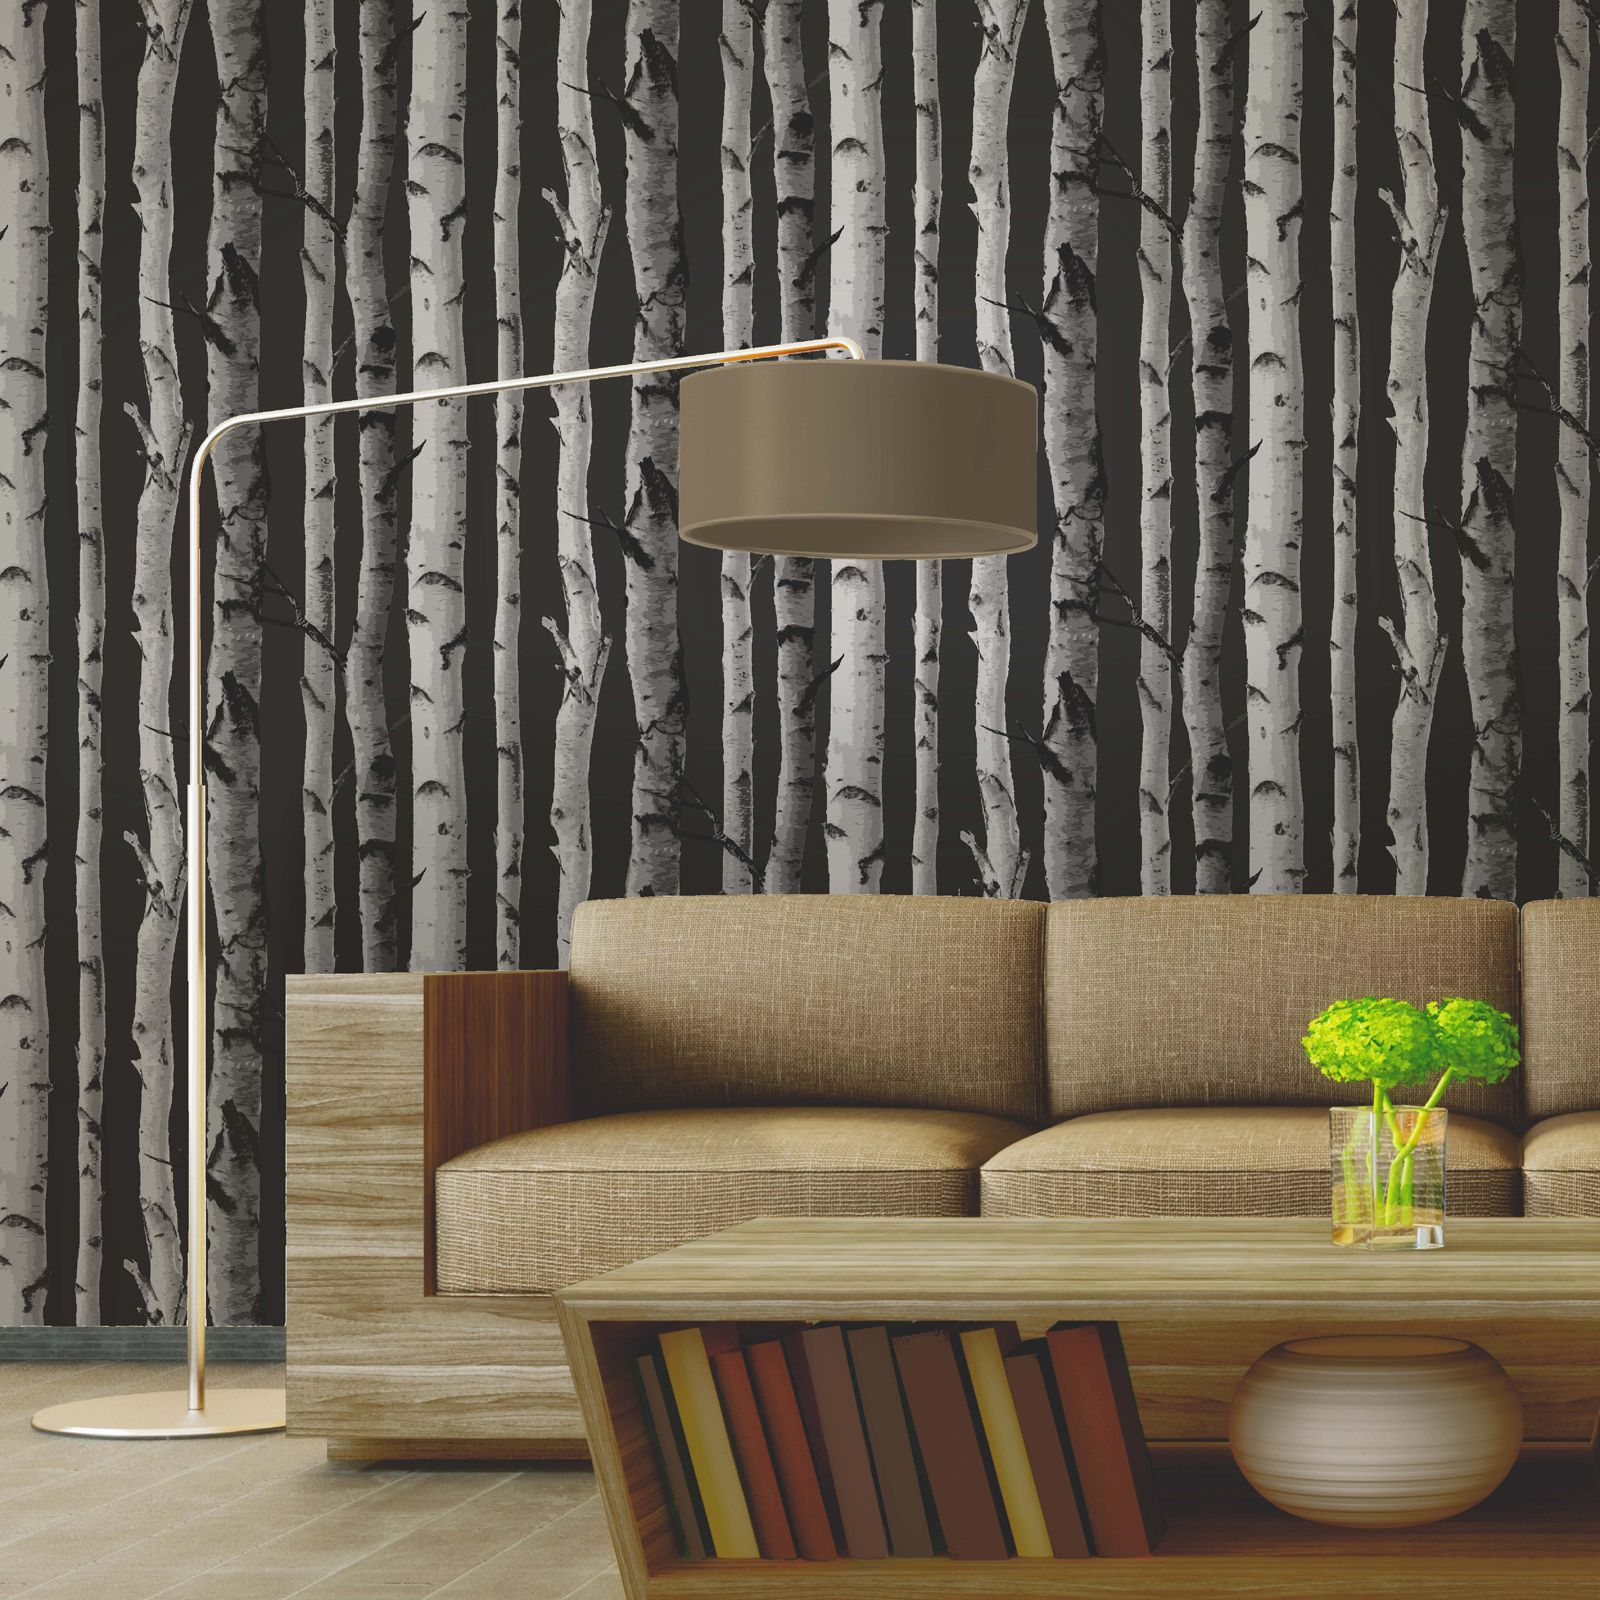 fine decor bouleau arbres papier peint 10m noir argent ebay. Black Bedroom Furniture Sets. Home Design Ideas